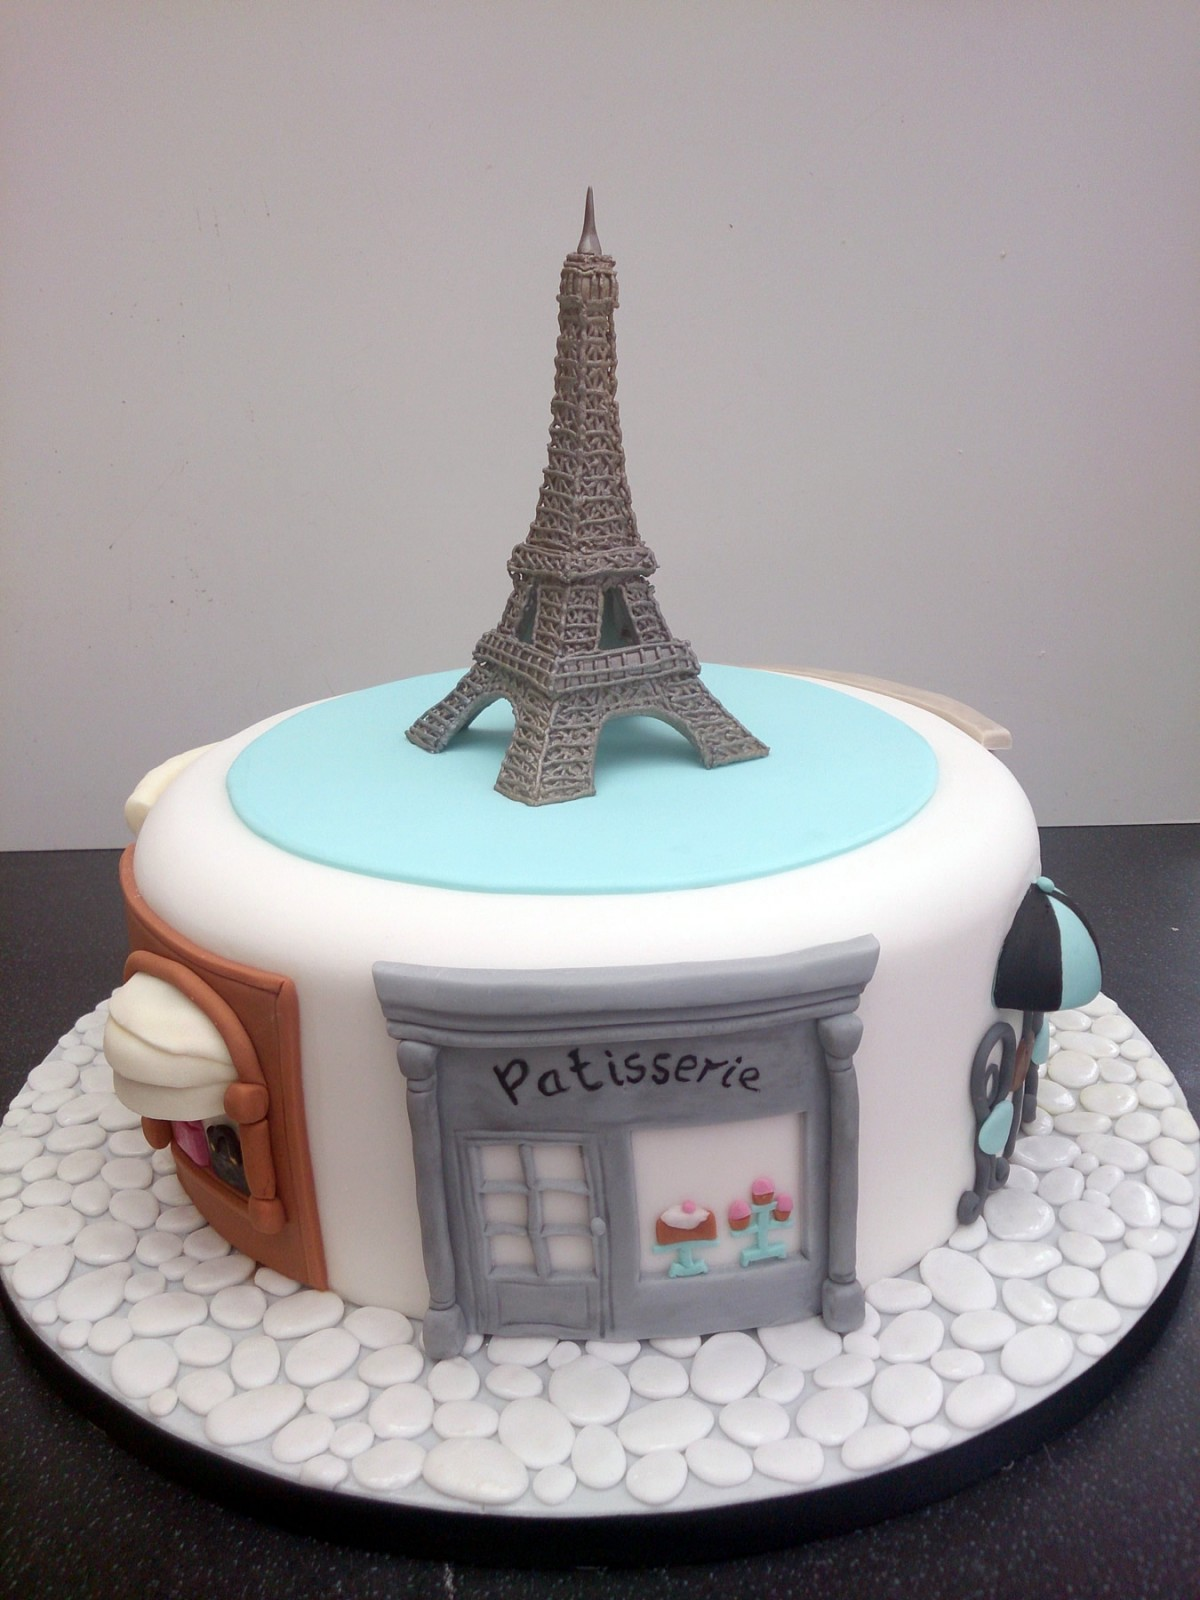 towe hobbies with Paris Themed Birthday Cake Featuring The Eiffel Tower on Easyglider besides 596795 1000 likewise Keep Talking And Nobody Explodes Indie Game Review additionally Draw A Beach Scene furthermore Buildings Office Building Tower Block 691784.